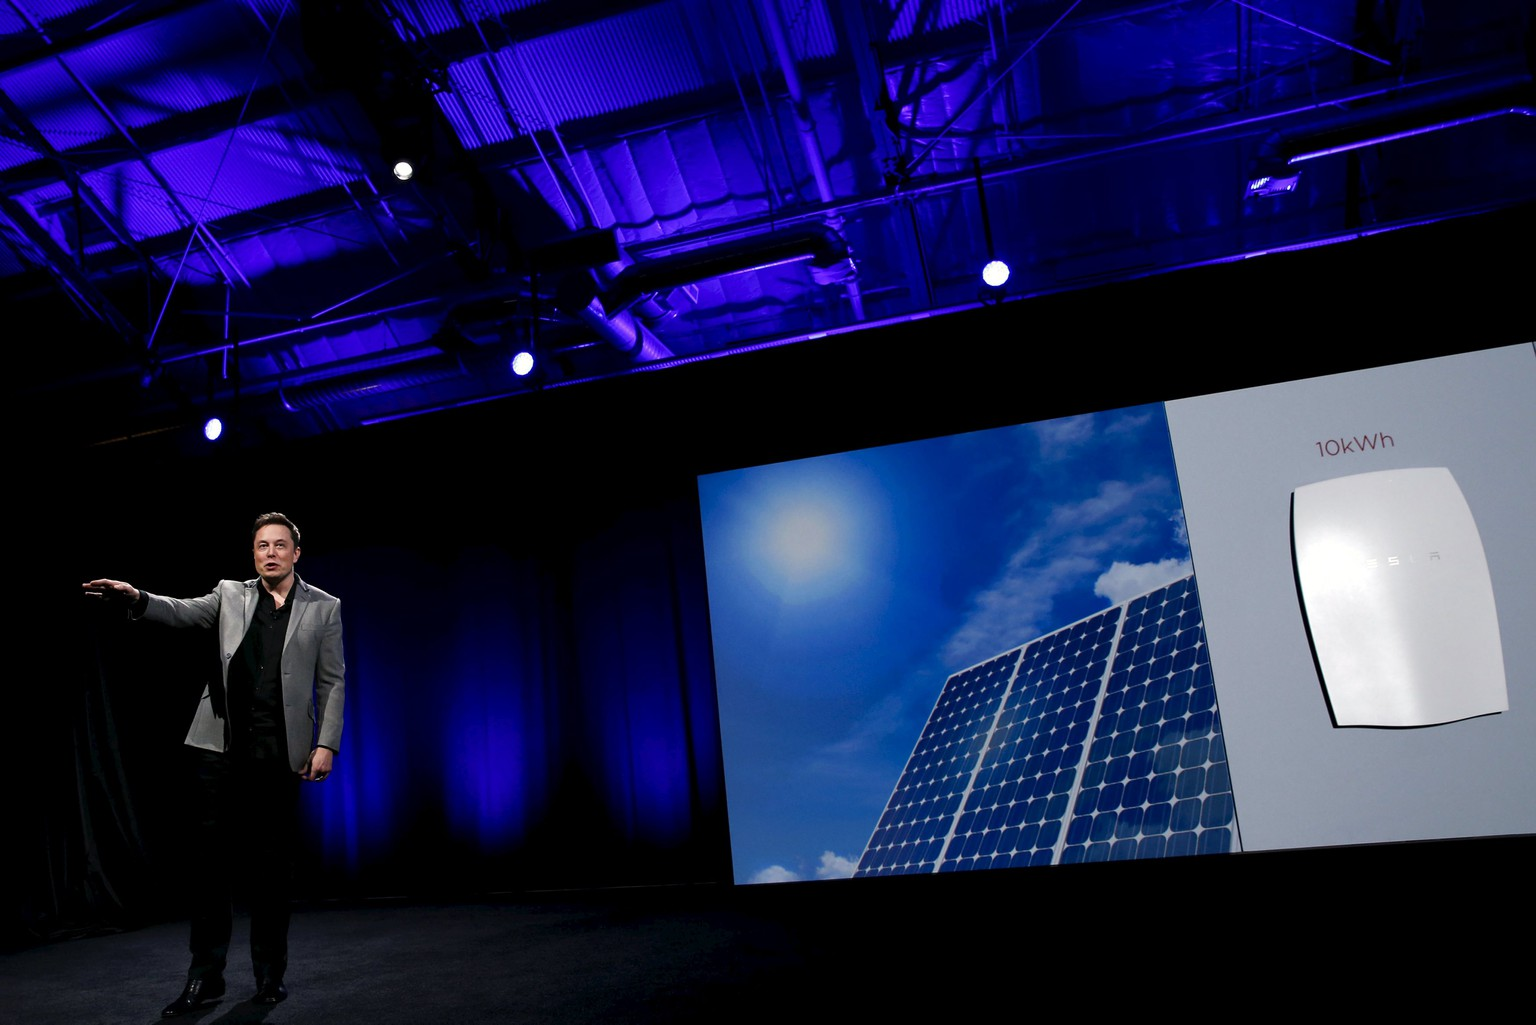 Tesla Motors CEO Elon Musk reveals the Tesla Energy Powerwall Home Battery during an event in Hawthorne, California April 30, 2015.  REUTERS/Patrick T. Fallon